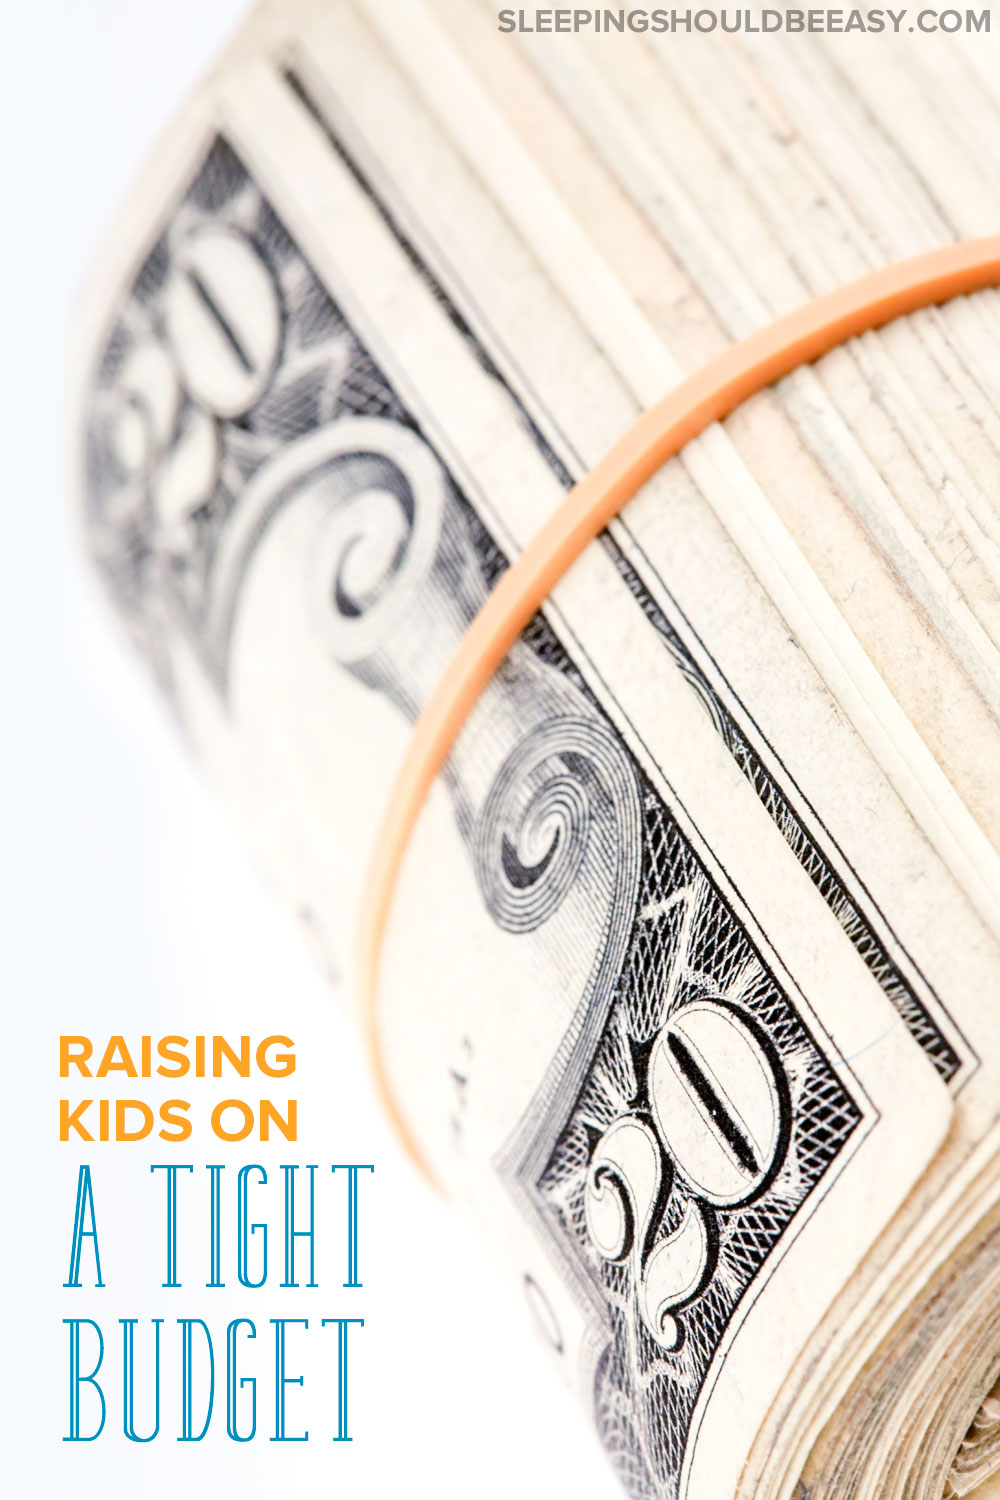 Learning how to raise a family on a tight budget is tough. What do you do when money is tight and you have a family to care for? Read how we're raising children on a tight budget while still enjoying life.